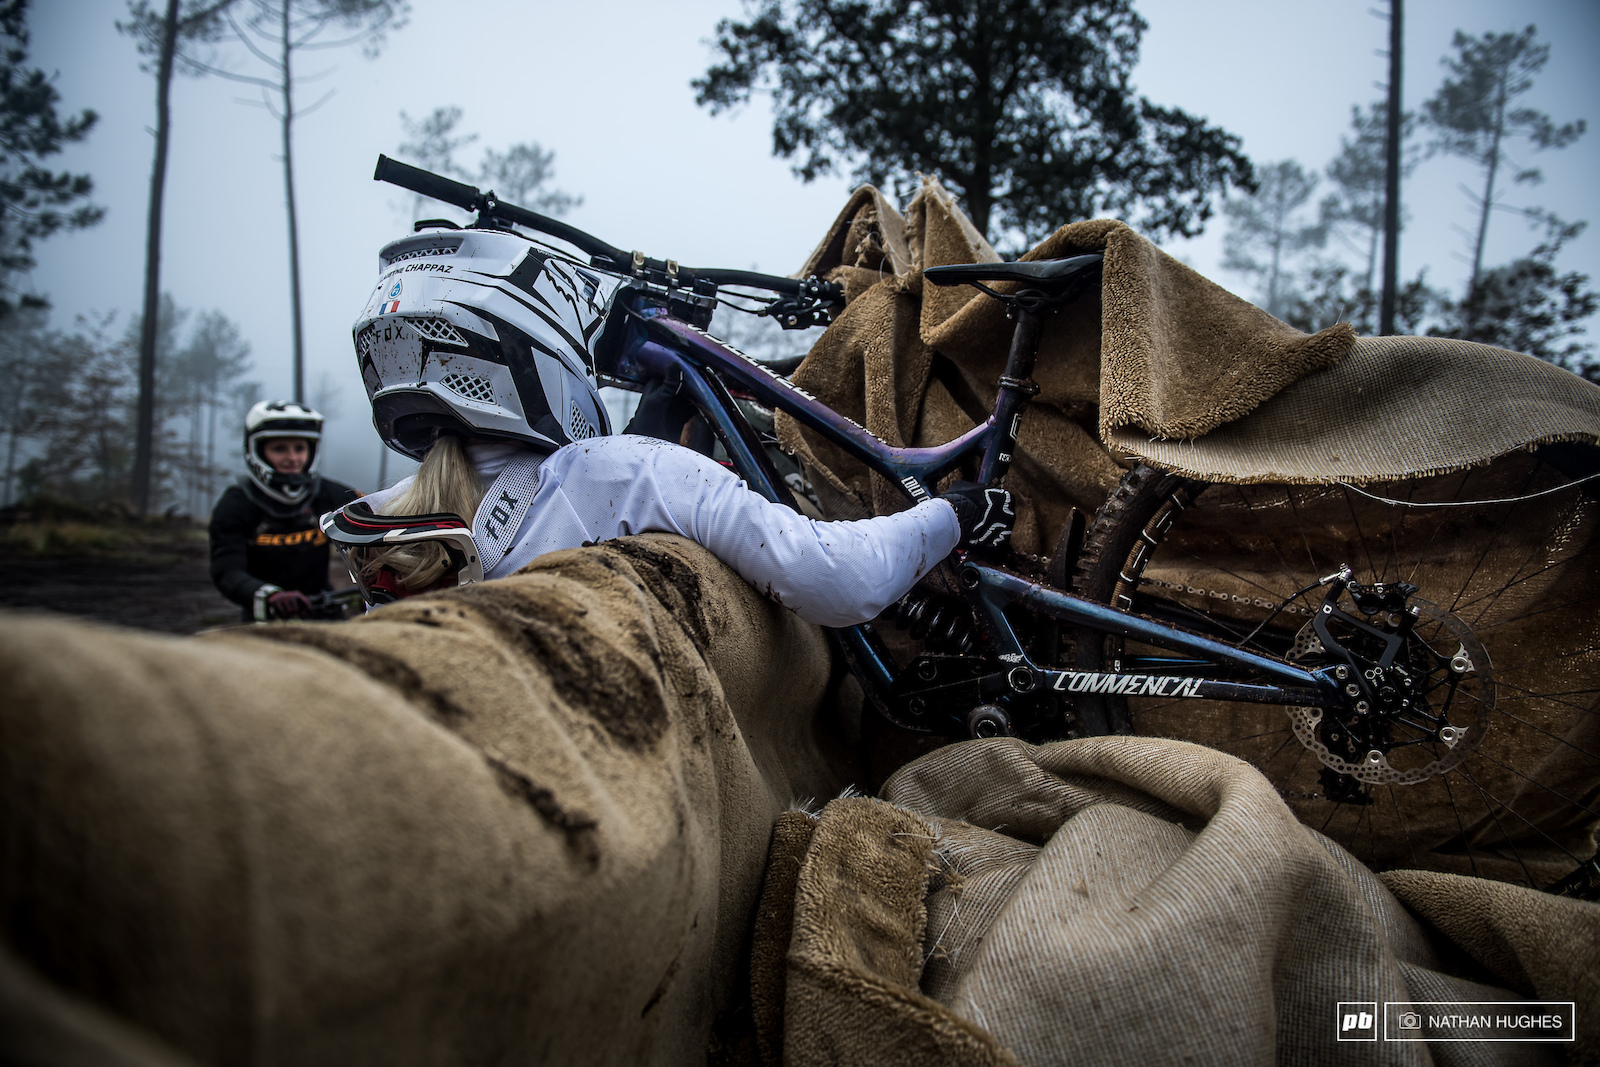 Junior World Champ Lauryn Chappaz unwraps her Commencal steed from the uplift.